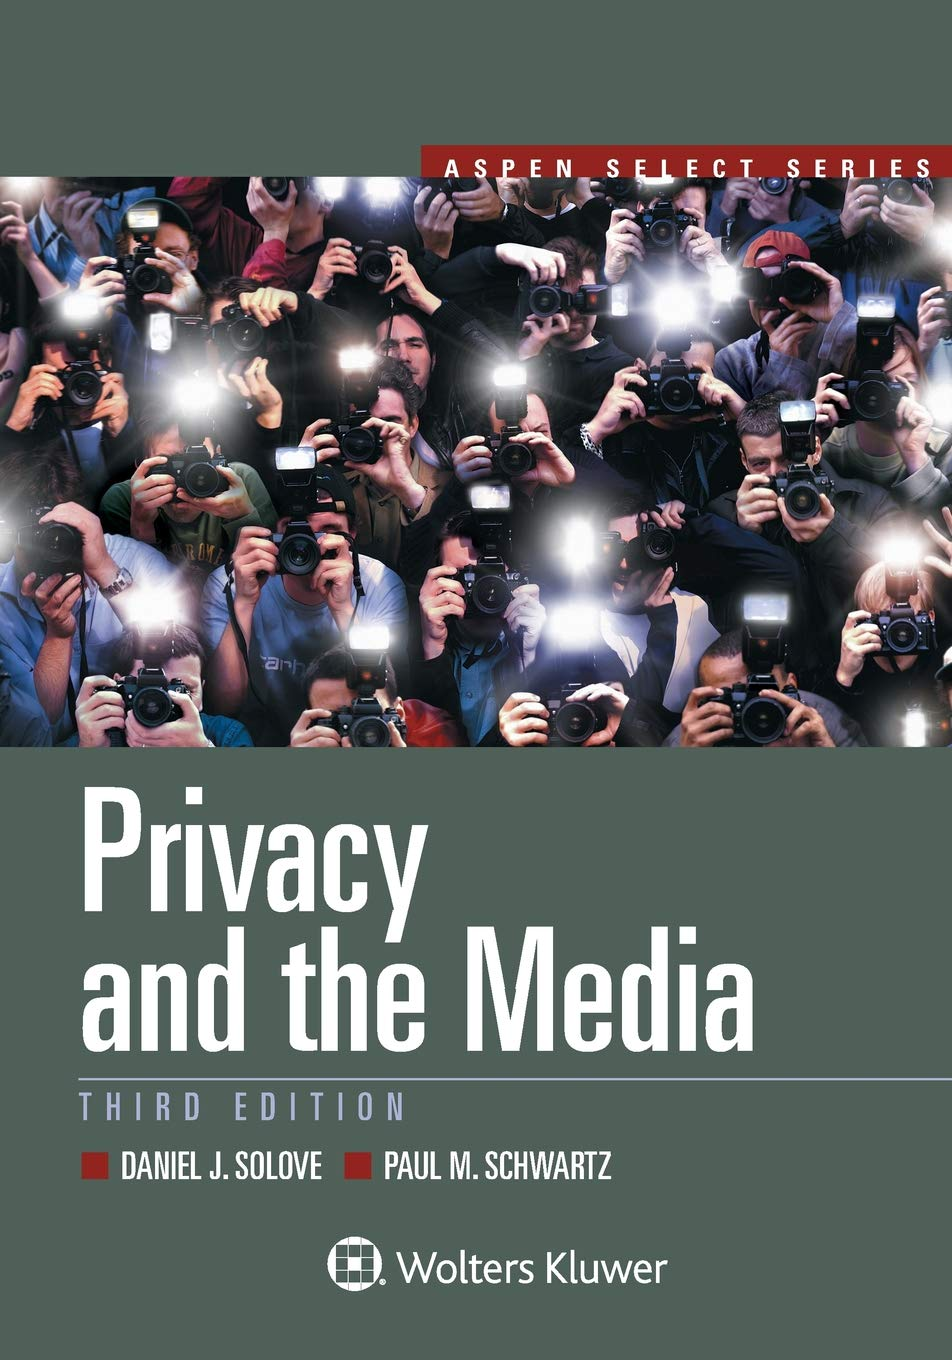 Privacy and the Media (Aspen Select) by Wolters Kluwer